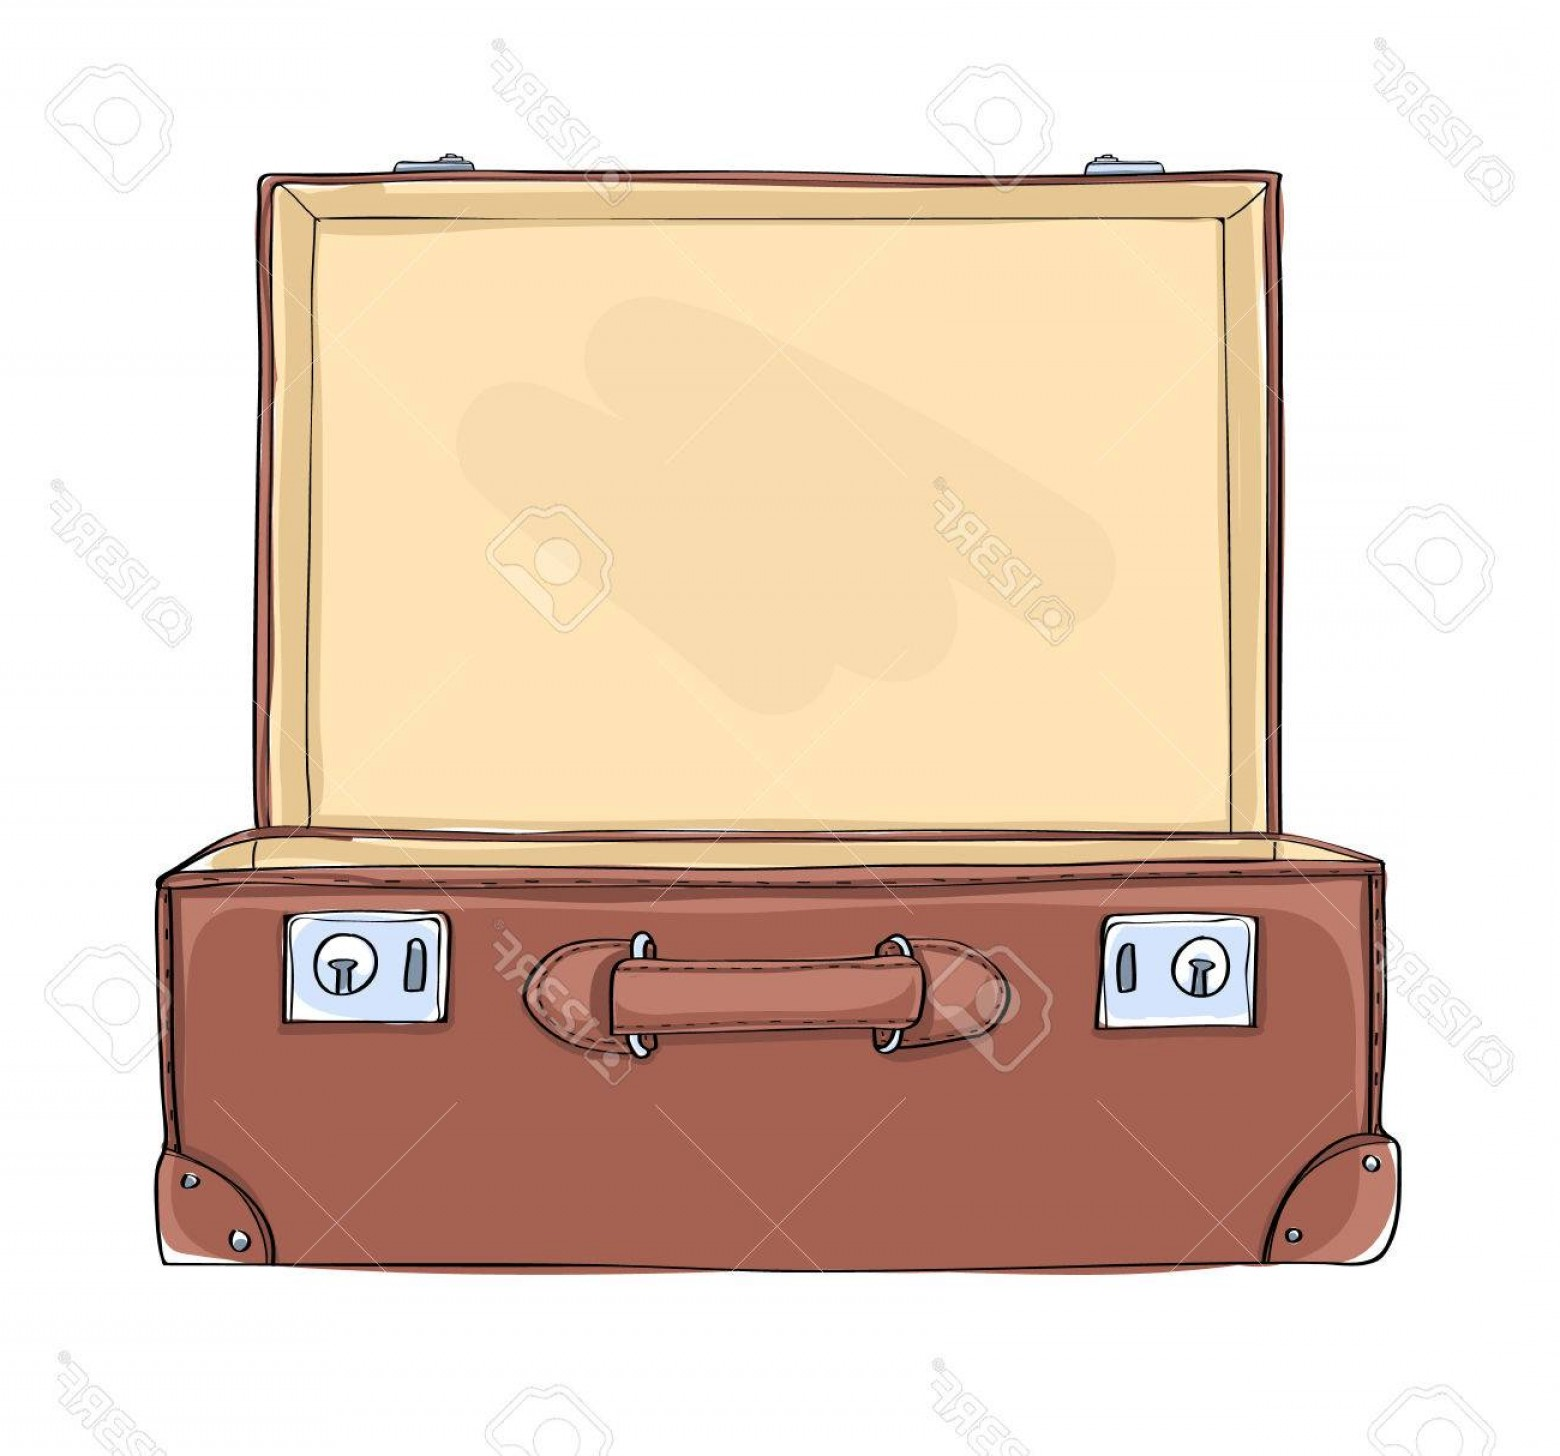 Vintage Luggage Vector: Photostock Vector Vintage Suitcase Lighting Inside Art Illustration